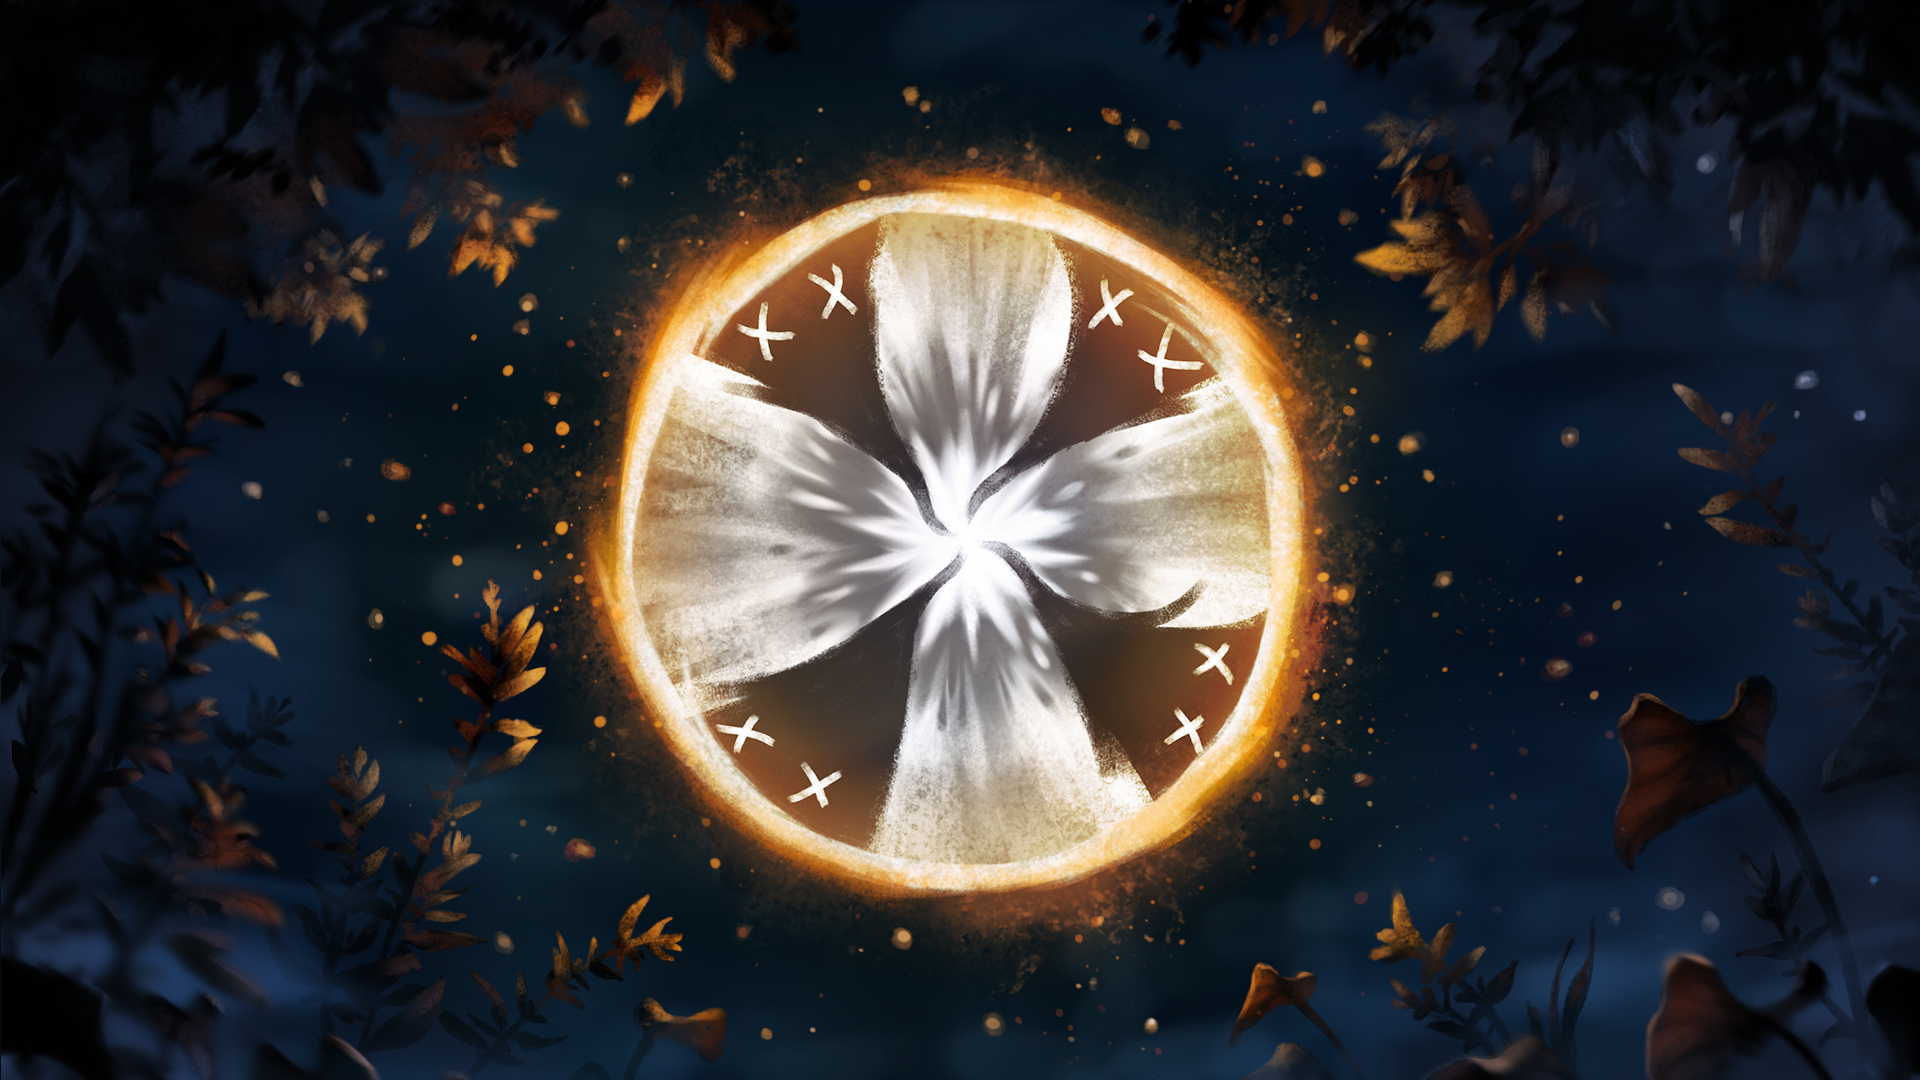 Deadly Detonation achievement for Ori and the Blind Forest on Nintendo Switch